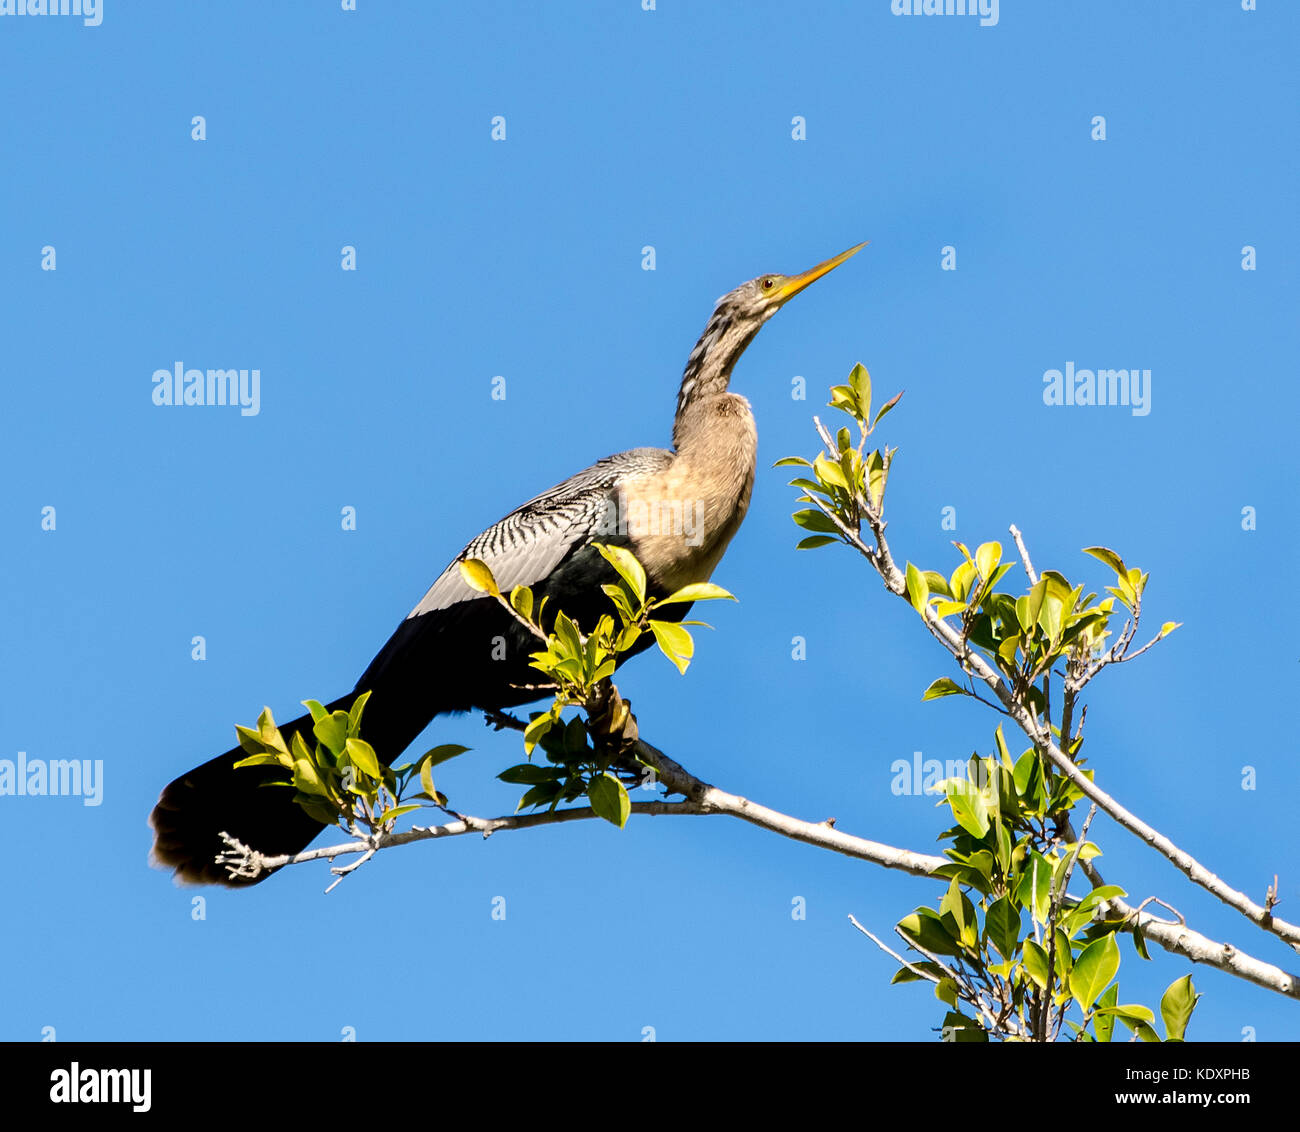 A female Anhinga waterbird (Anhinga leucogaster) rests on a mangrove branch in southern Florida, USA, after diving - Stock Image